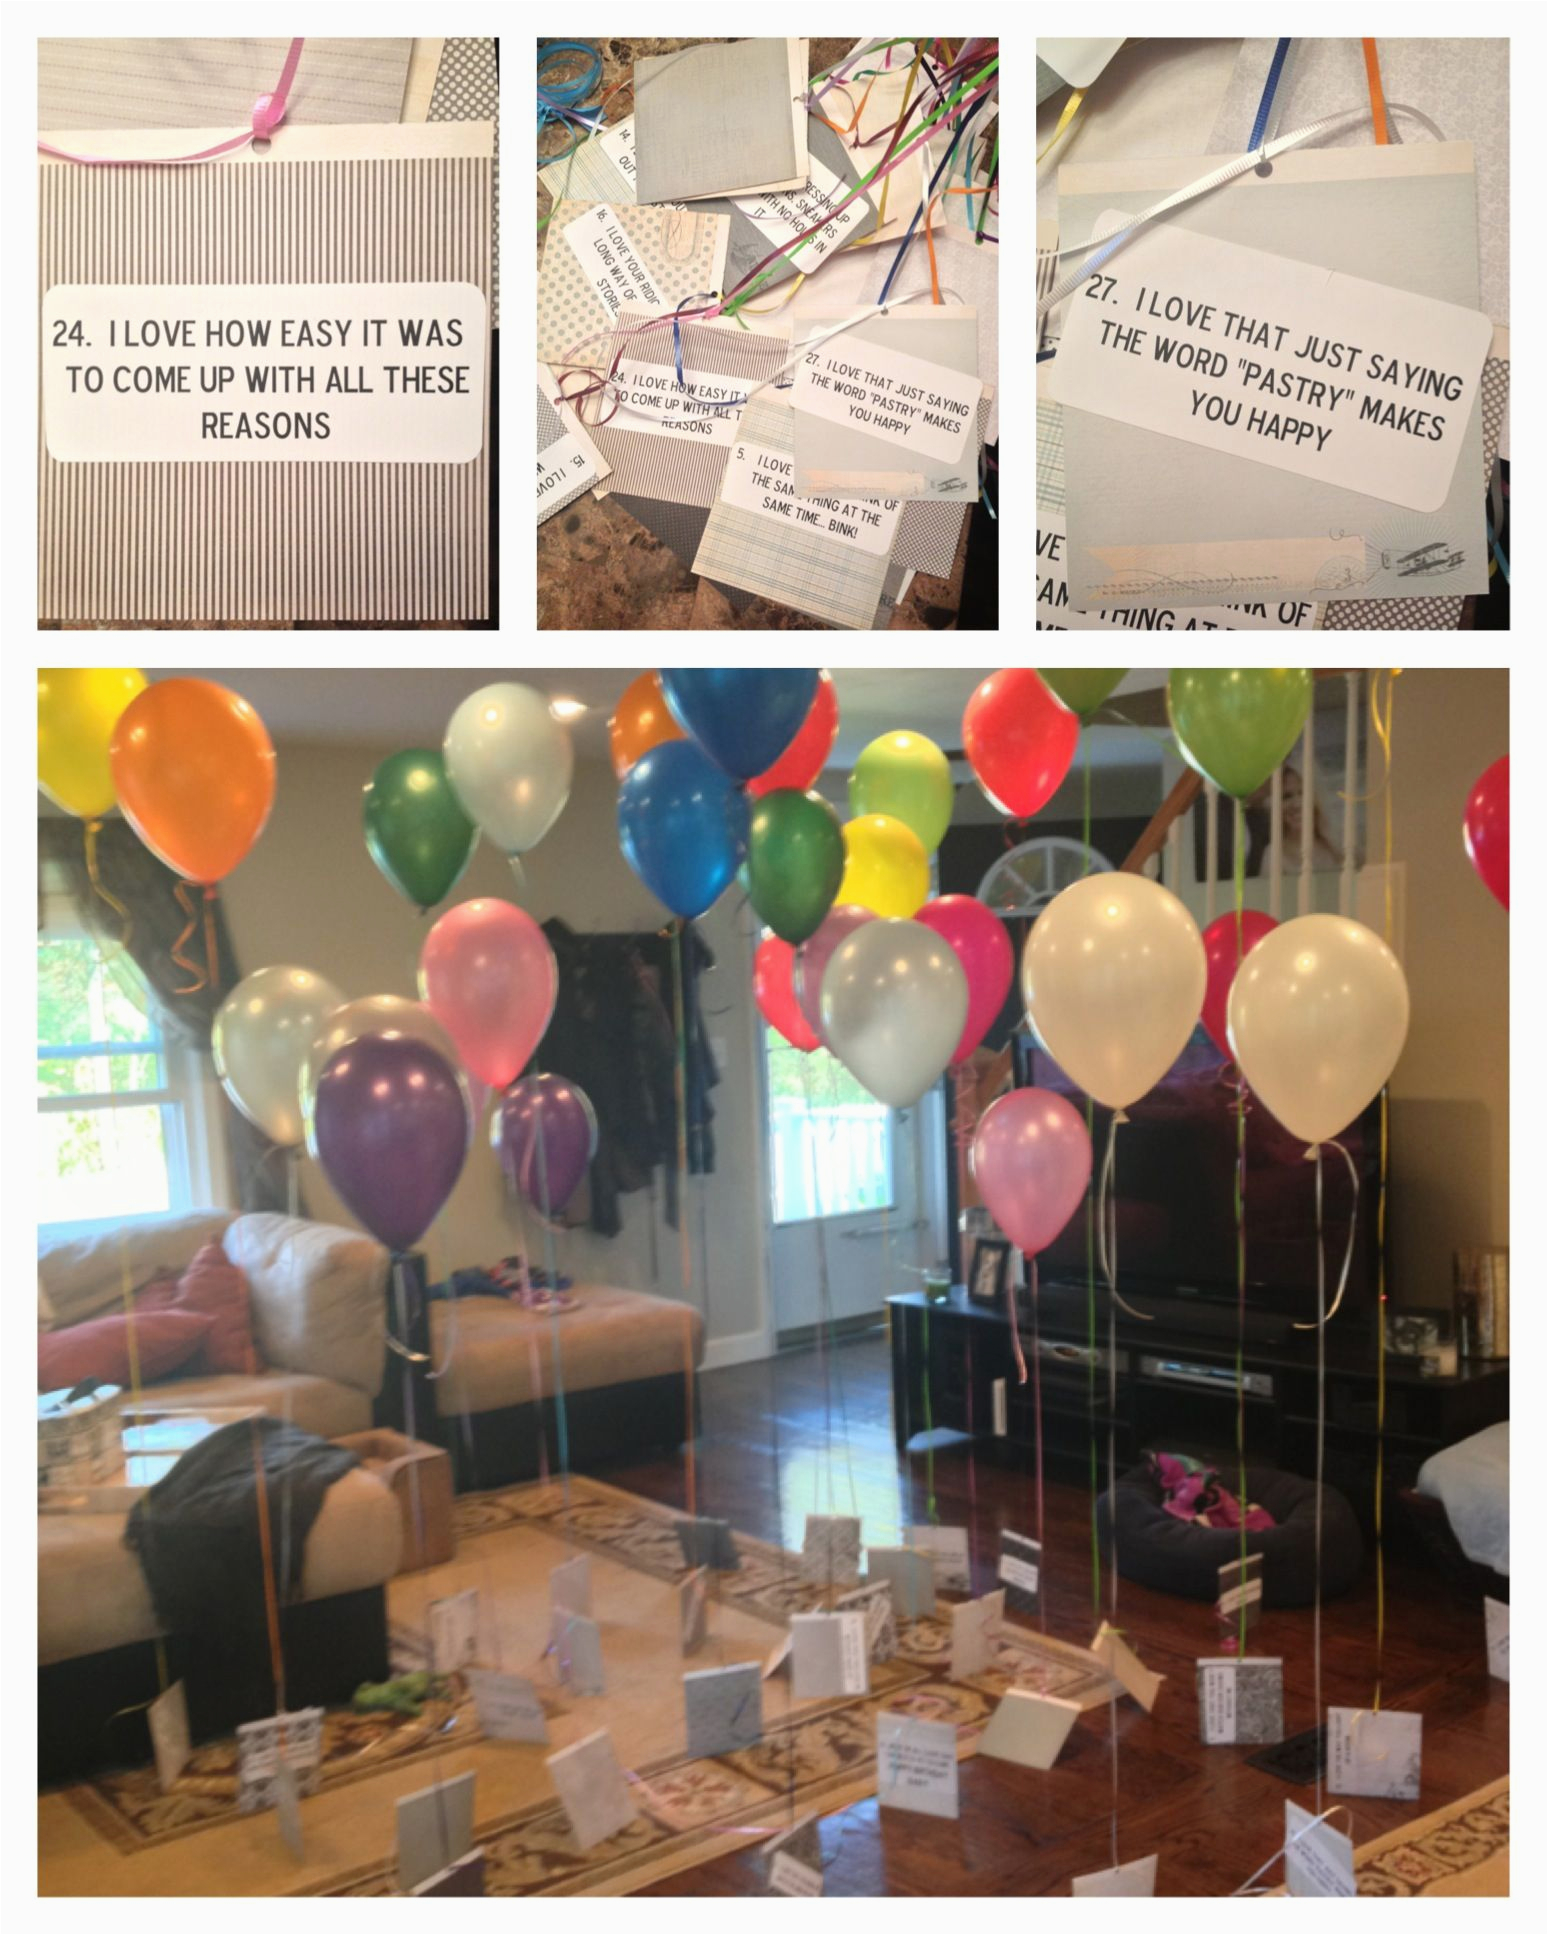 28 reasons gift for my husbands birthday